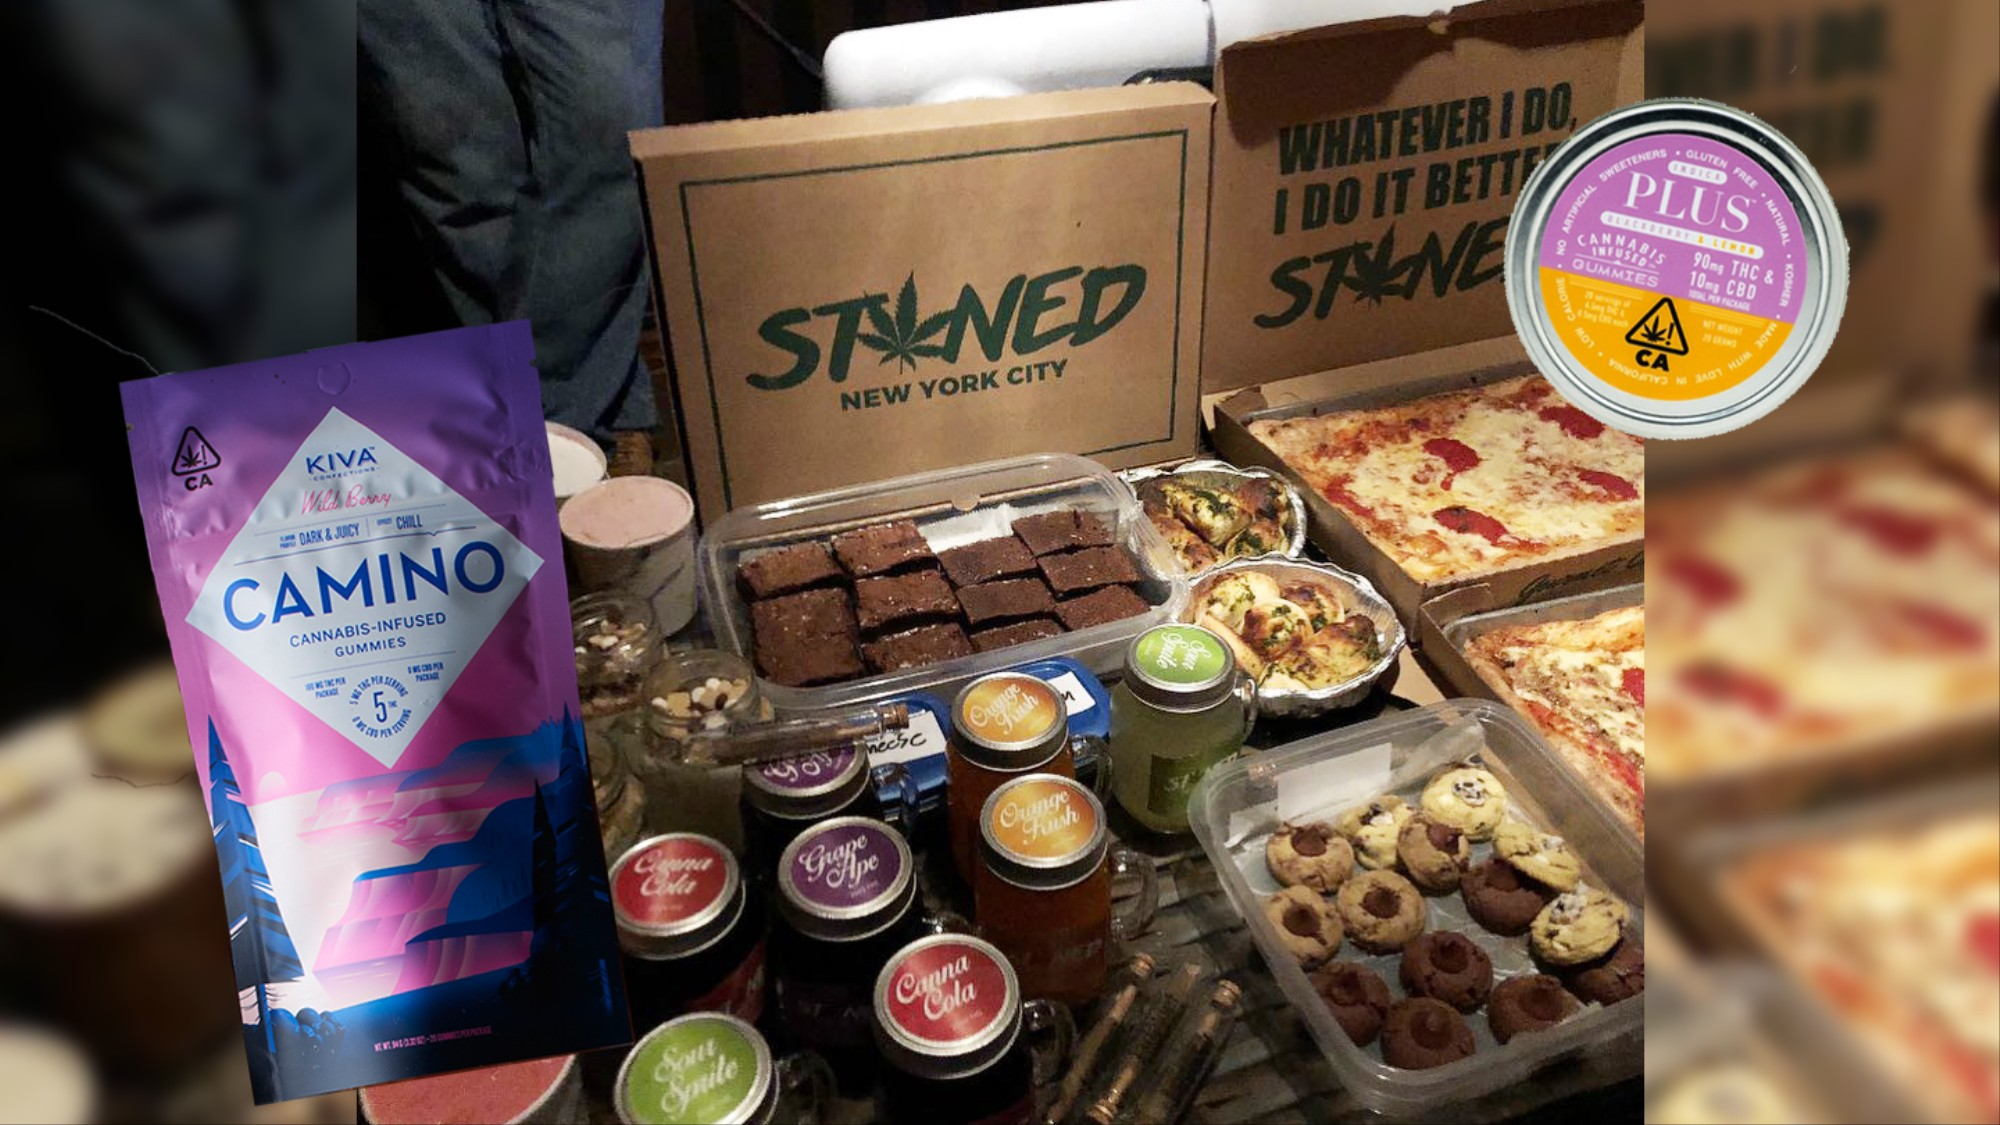 This $50 Weed Pizza Could Be The Future of Edibles - VICE